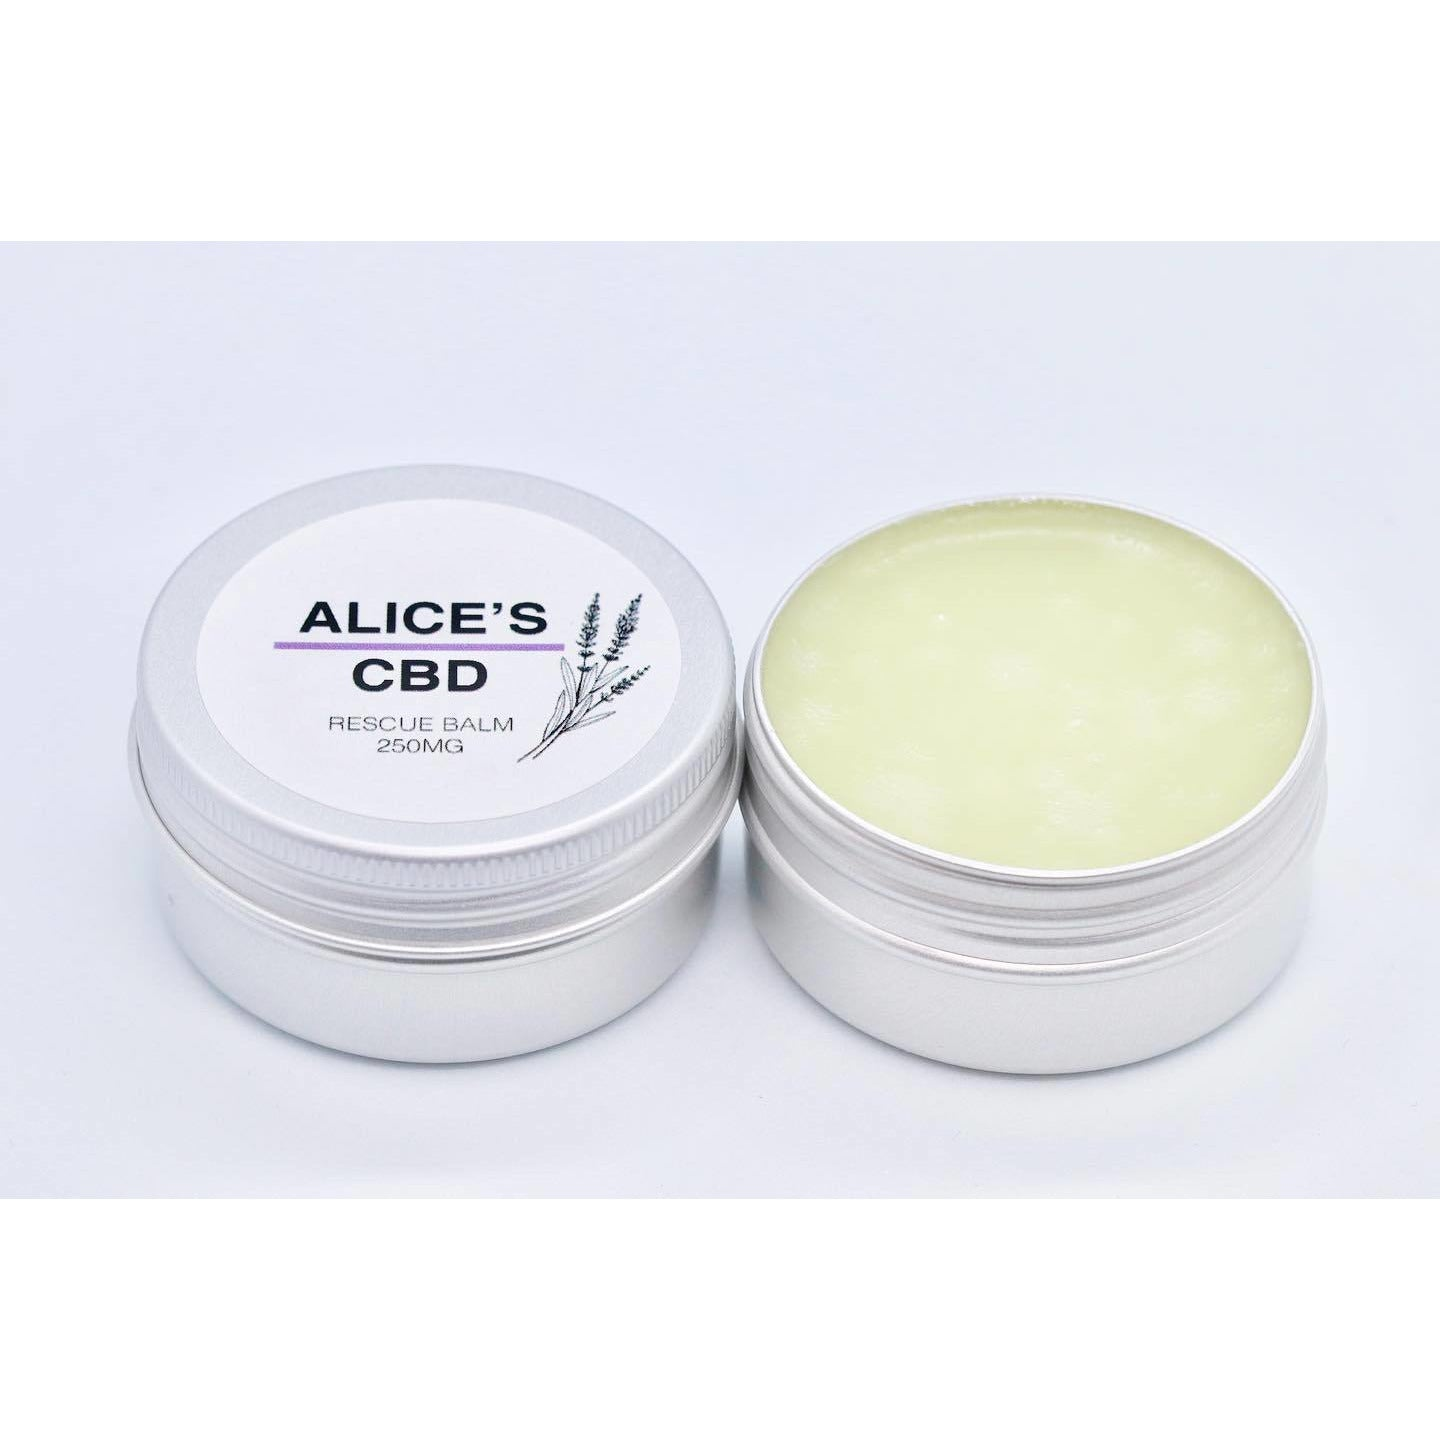 Alice's CBD balm - 250mg CBD - 30ml - Inspired Life CBD